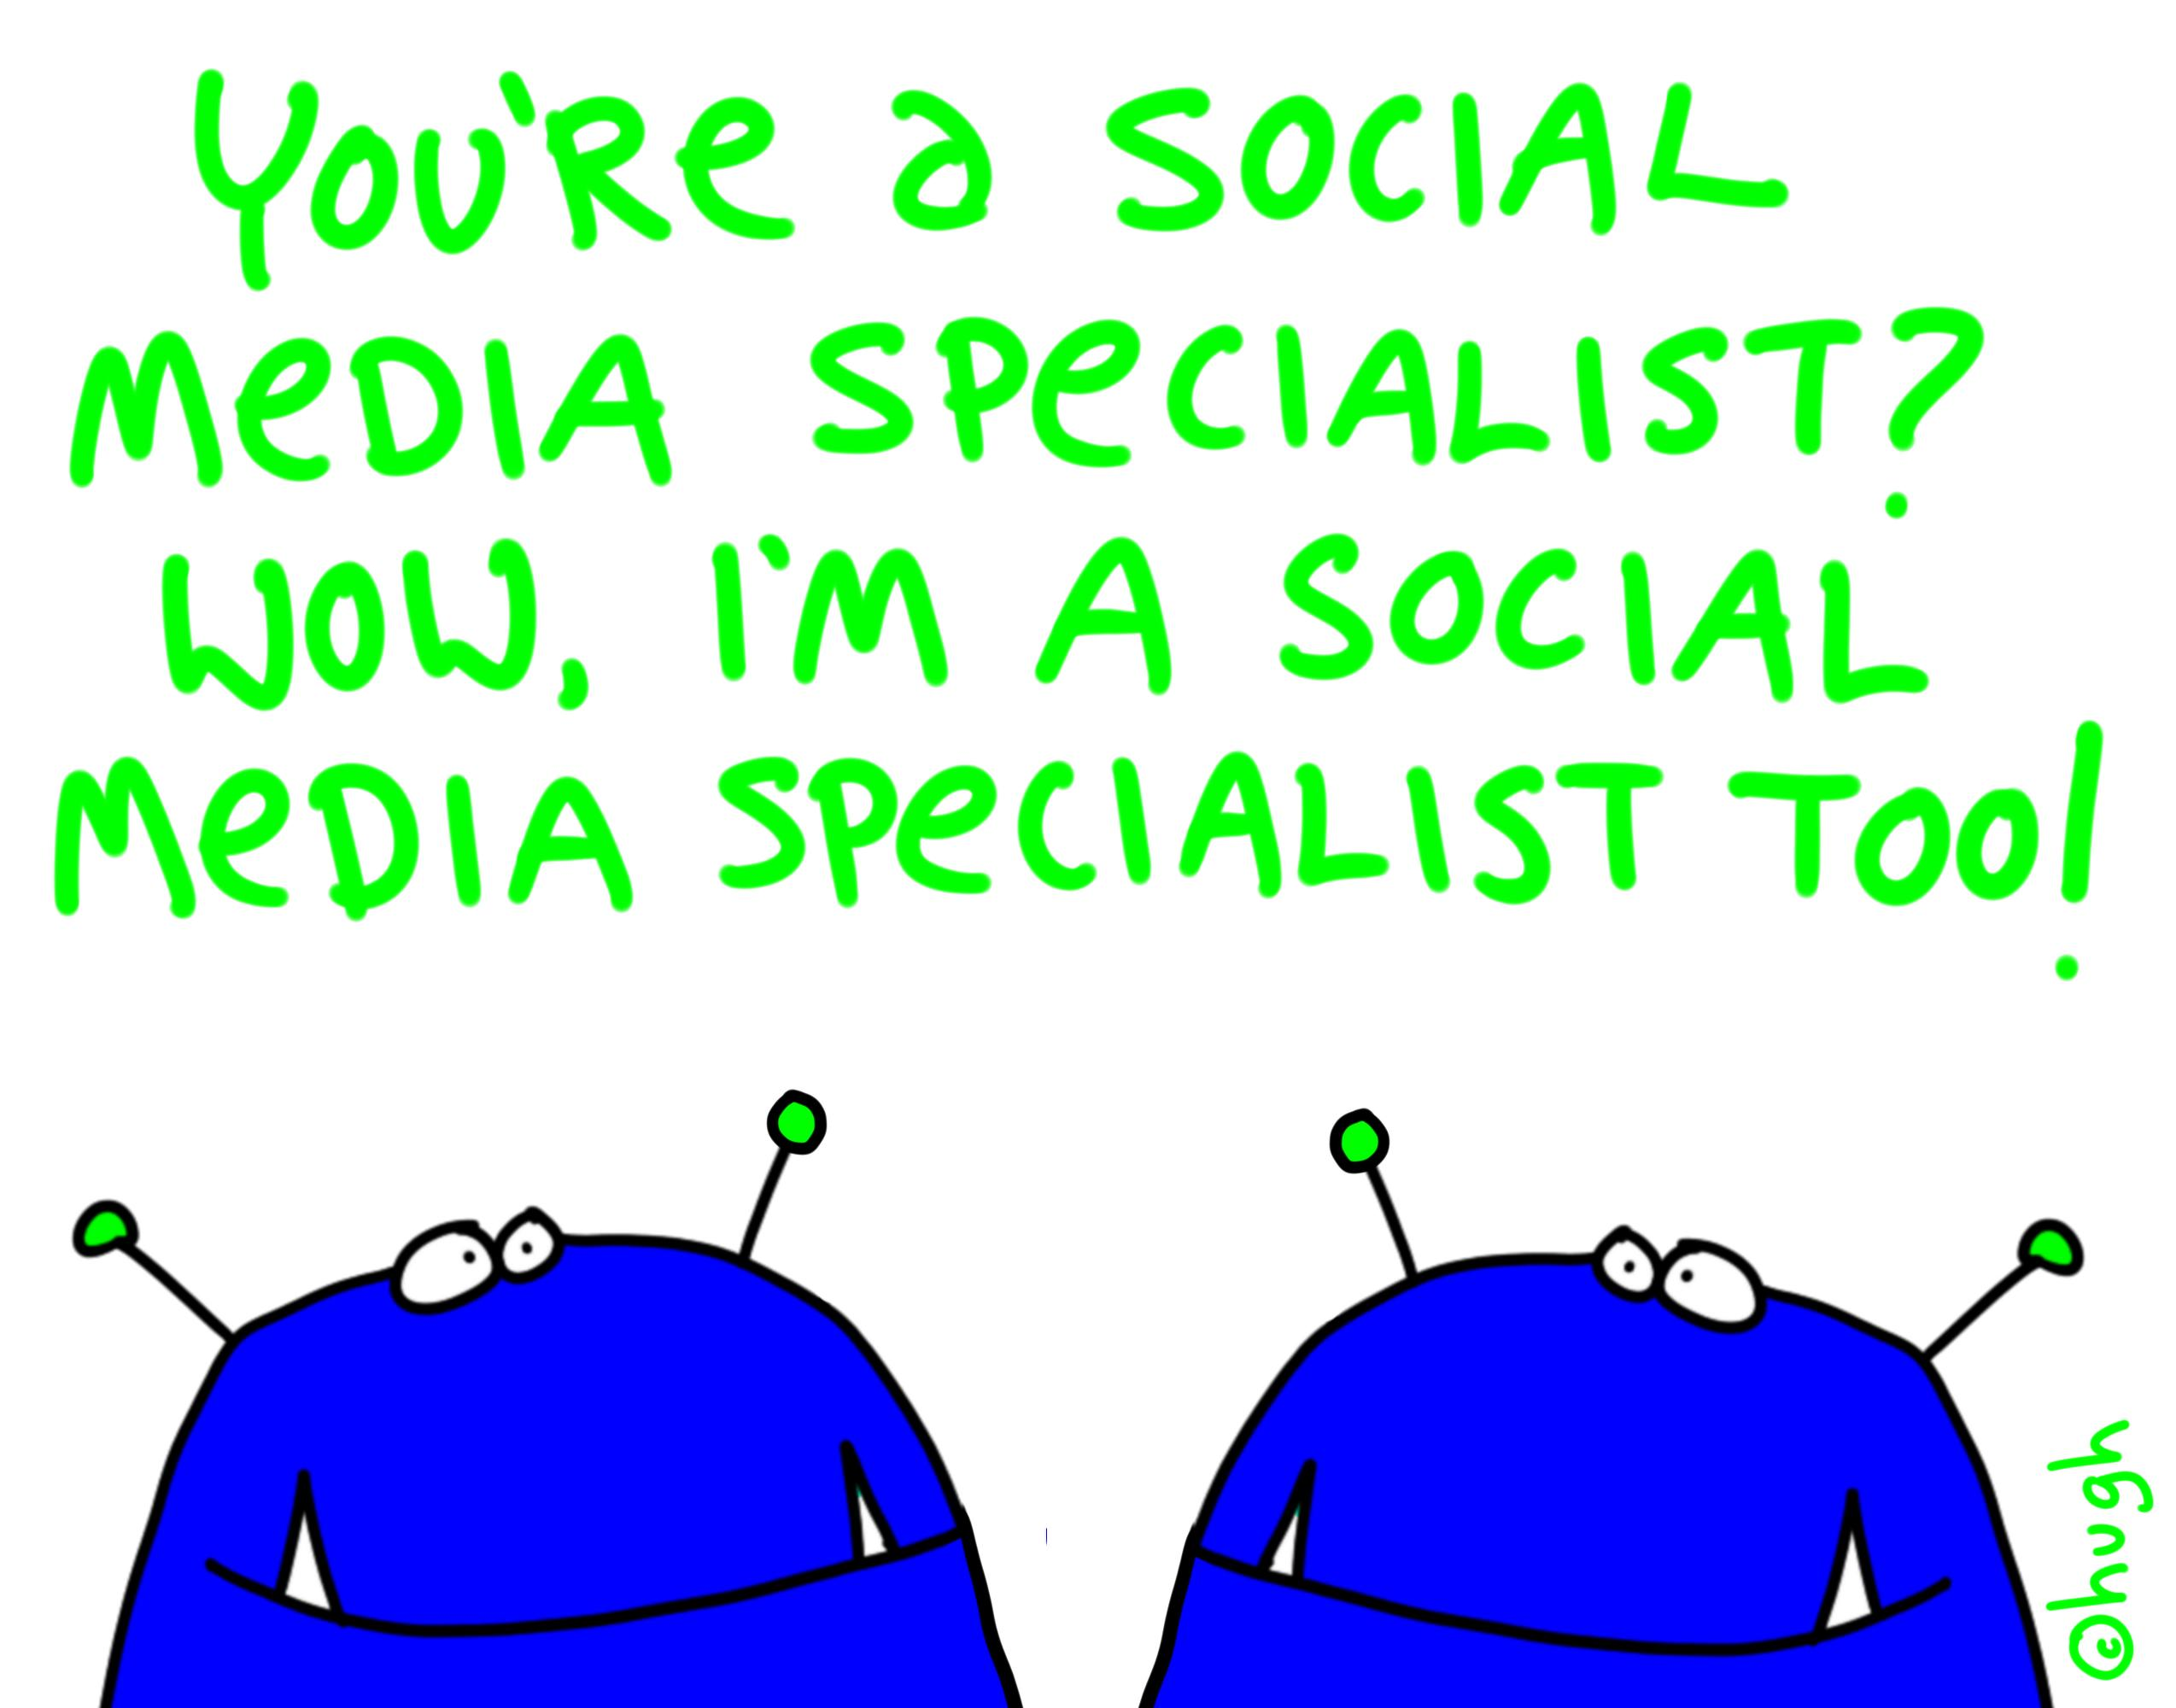 A day in a life of a social media expert